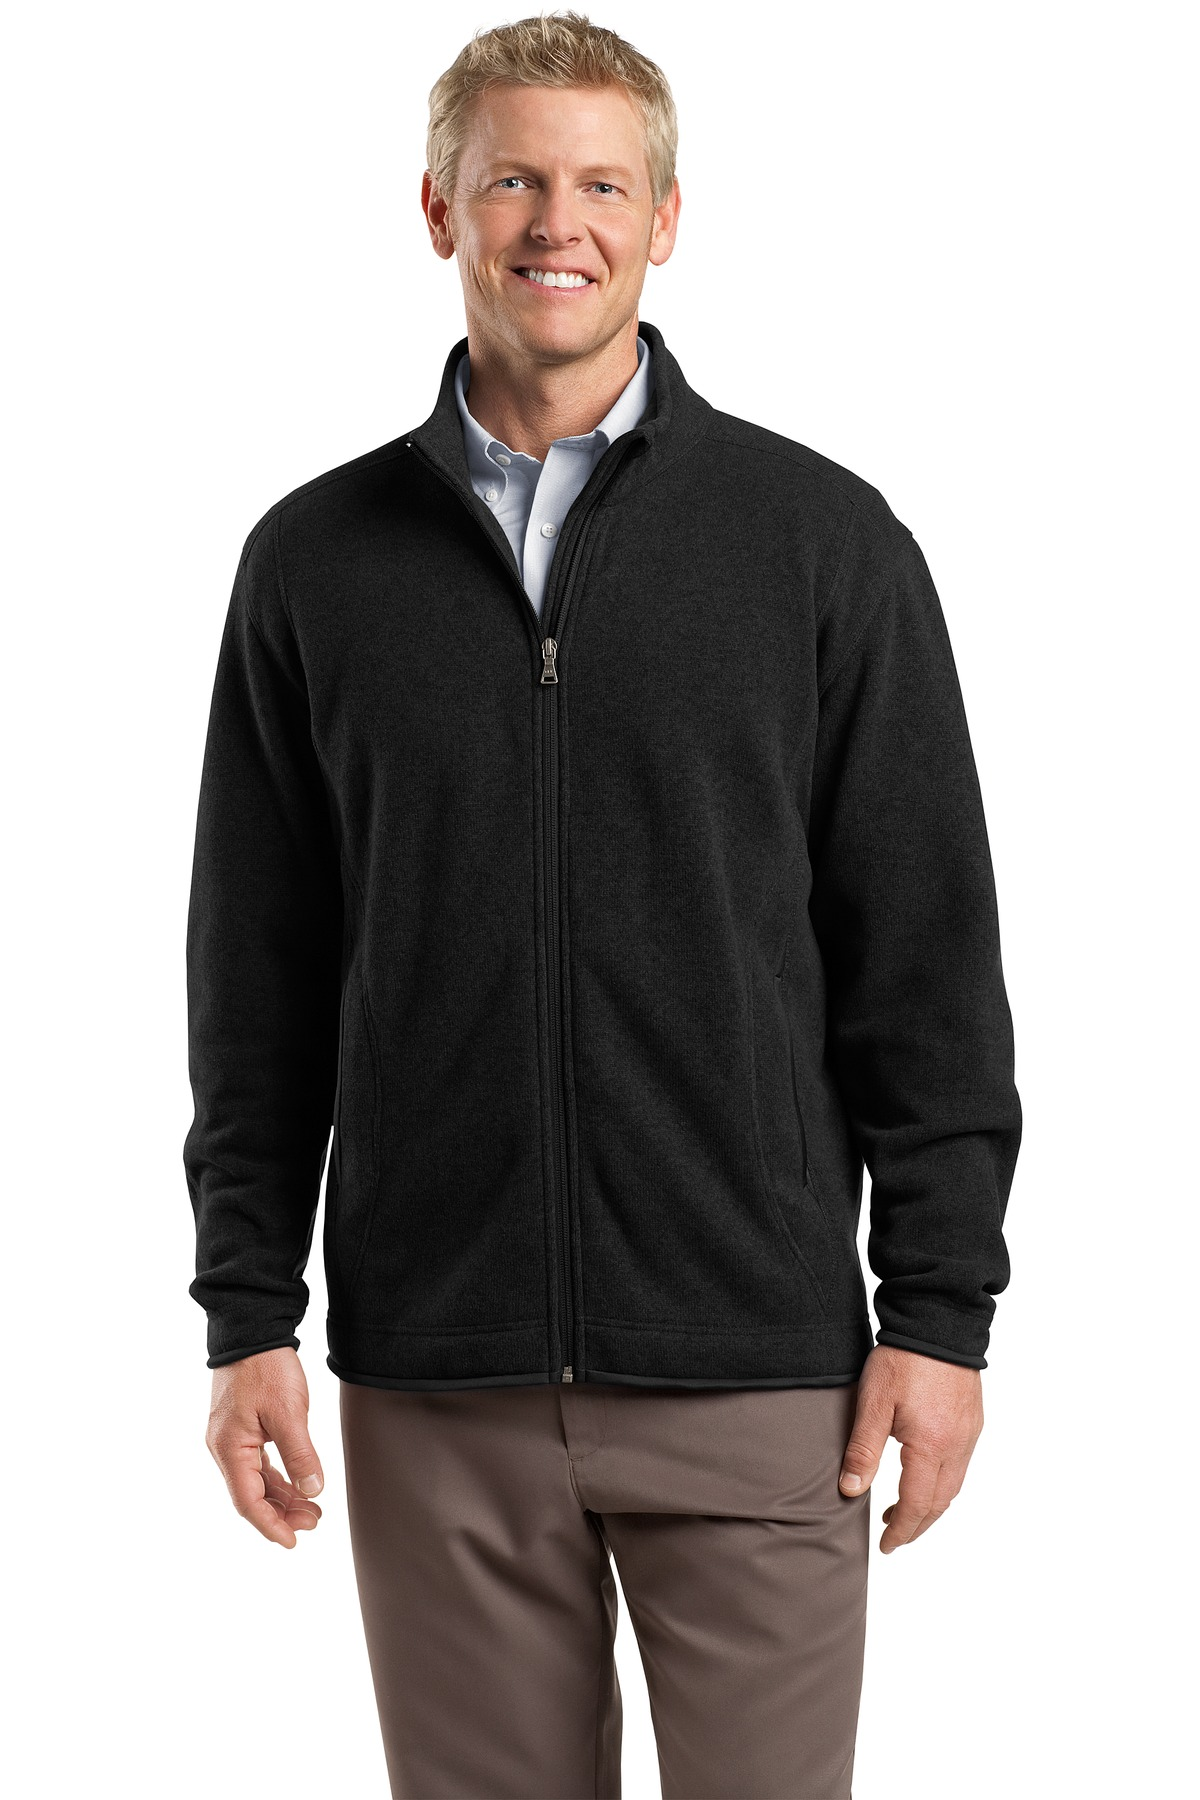 DISCONTINUED Red House - Sweater Fleece Full-Zip Jacket. RH54